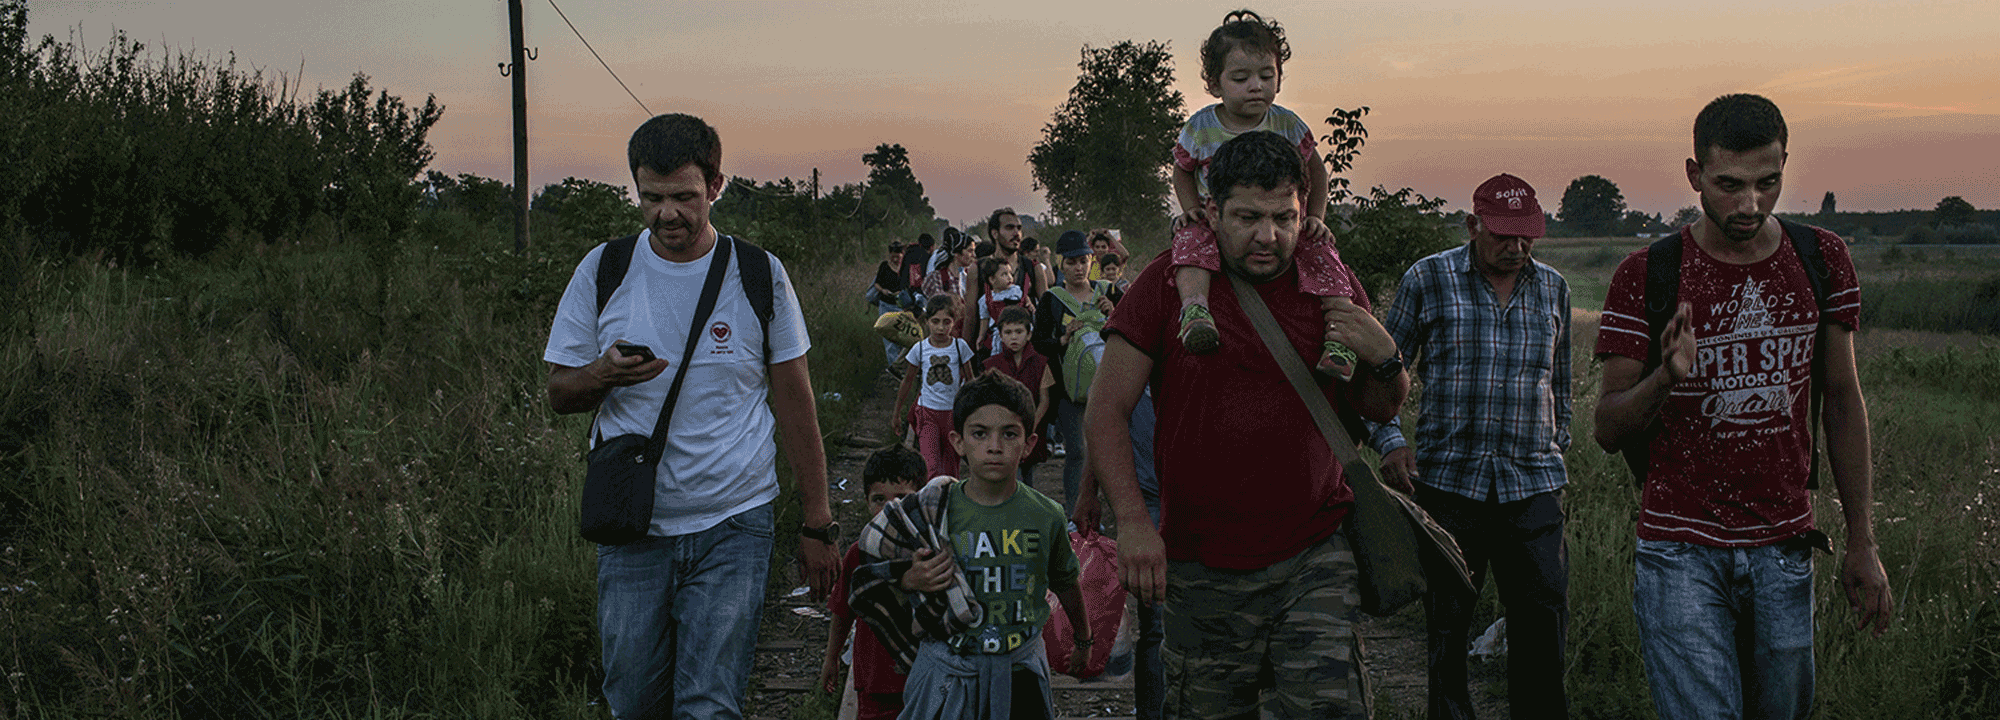 Horgos, Serbia - August 30, 2015: Farid Majid carries his daughter Silva on his shoulder next to his son Nabih, center, as Farid's brother Ahmad Majid, at left, checks his phone while walking down the railway with their relatives towards the Hungarian border, in Horgos. CREDIT: Photo by Mauricio Lima for The New York Times